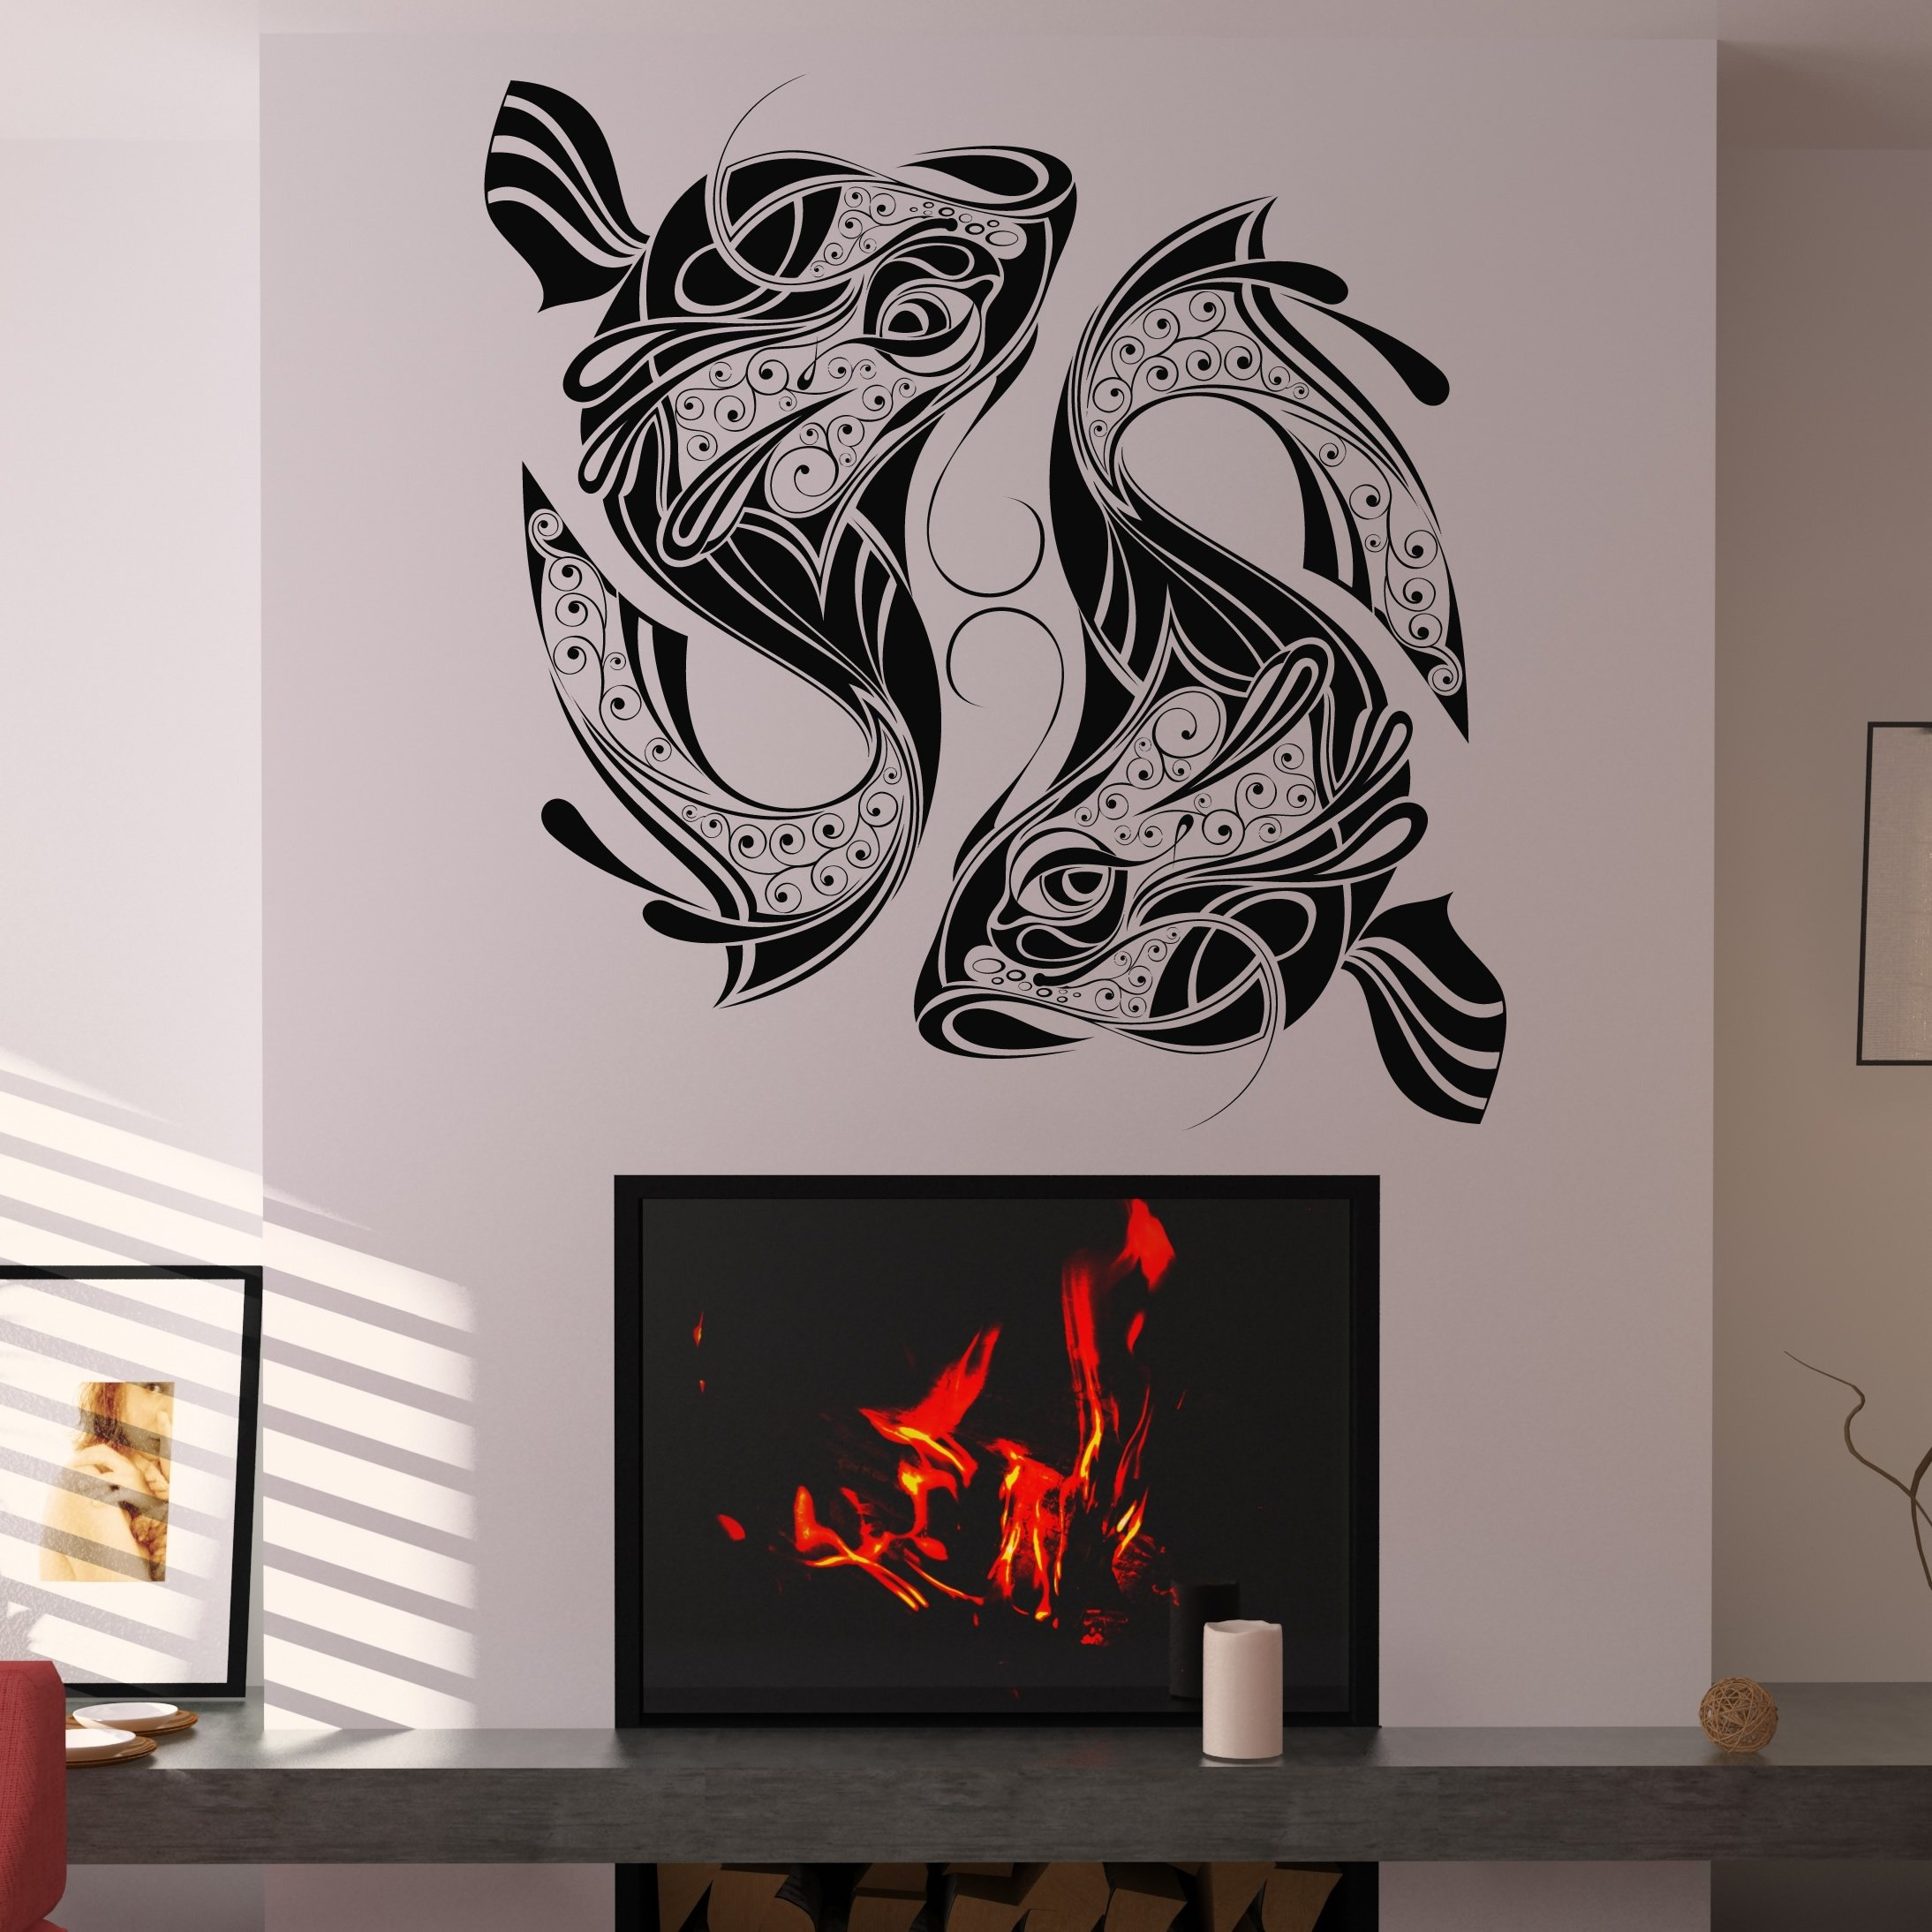 Decorative Wall Stickers 17 Architectural Wall Graphics Images Arch Architectural